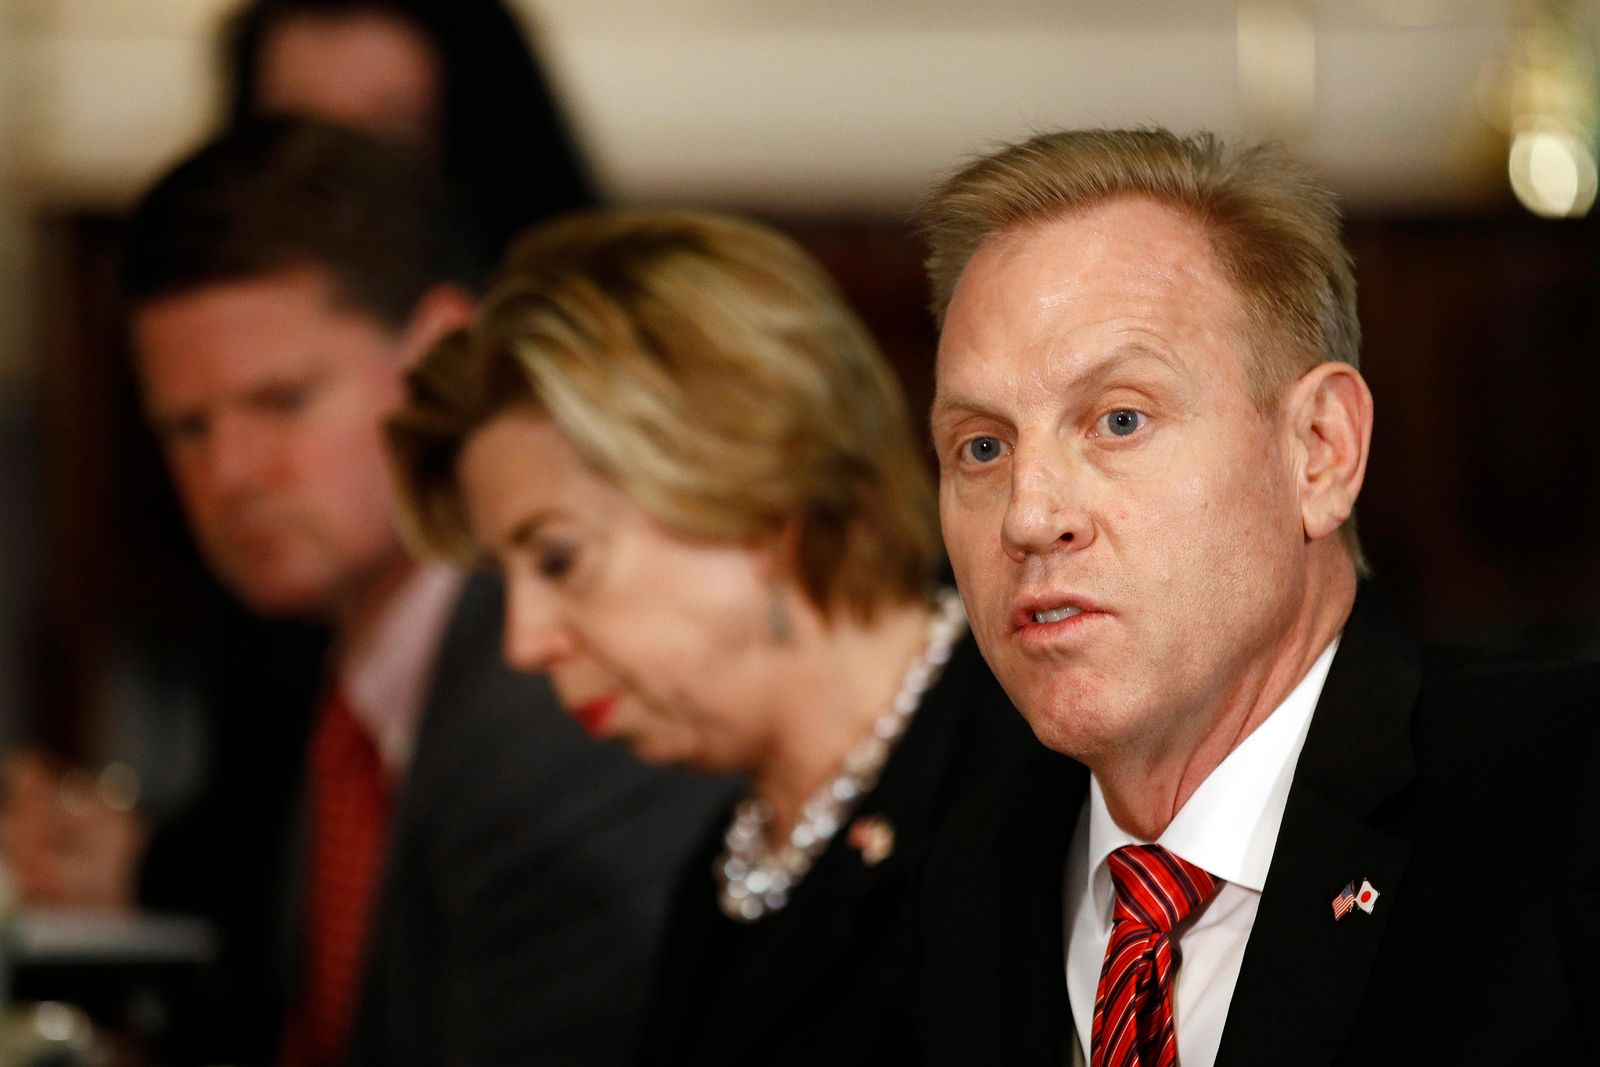 Acting Defense Secretary Patrick Shanahan speaks during a meeting with Japan's Defense Minister Takeshi Iwaya at the Pentagon, Friday, April 19, 2019, in Washington. (AP Photo/Patrick Semansky)